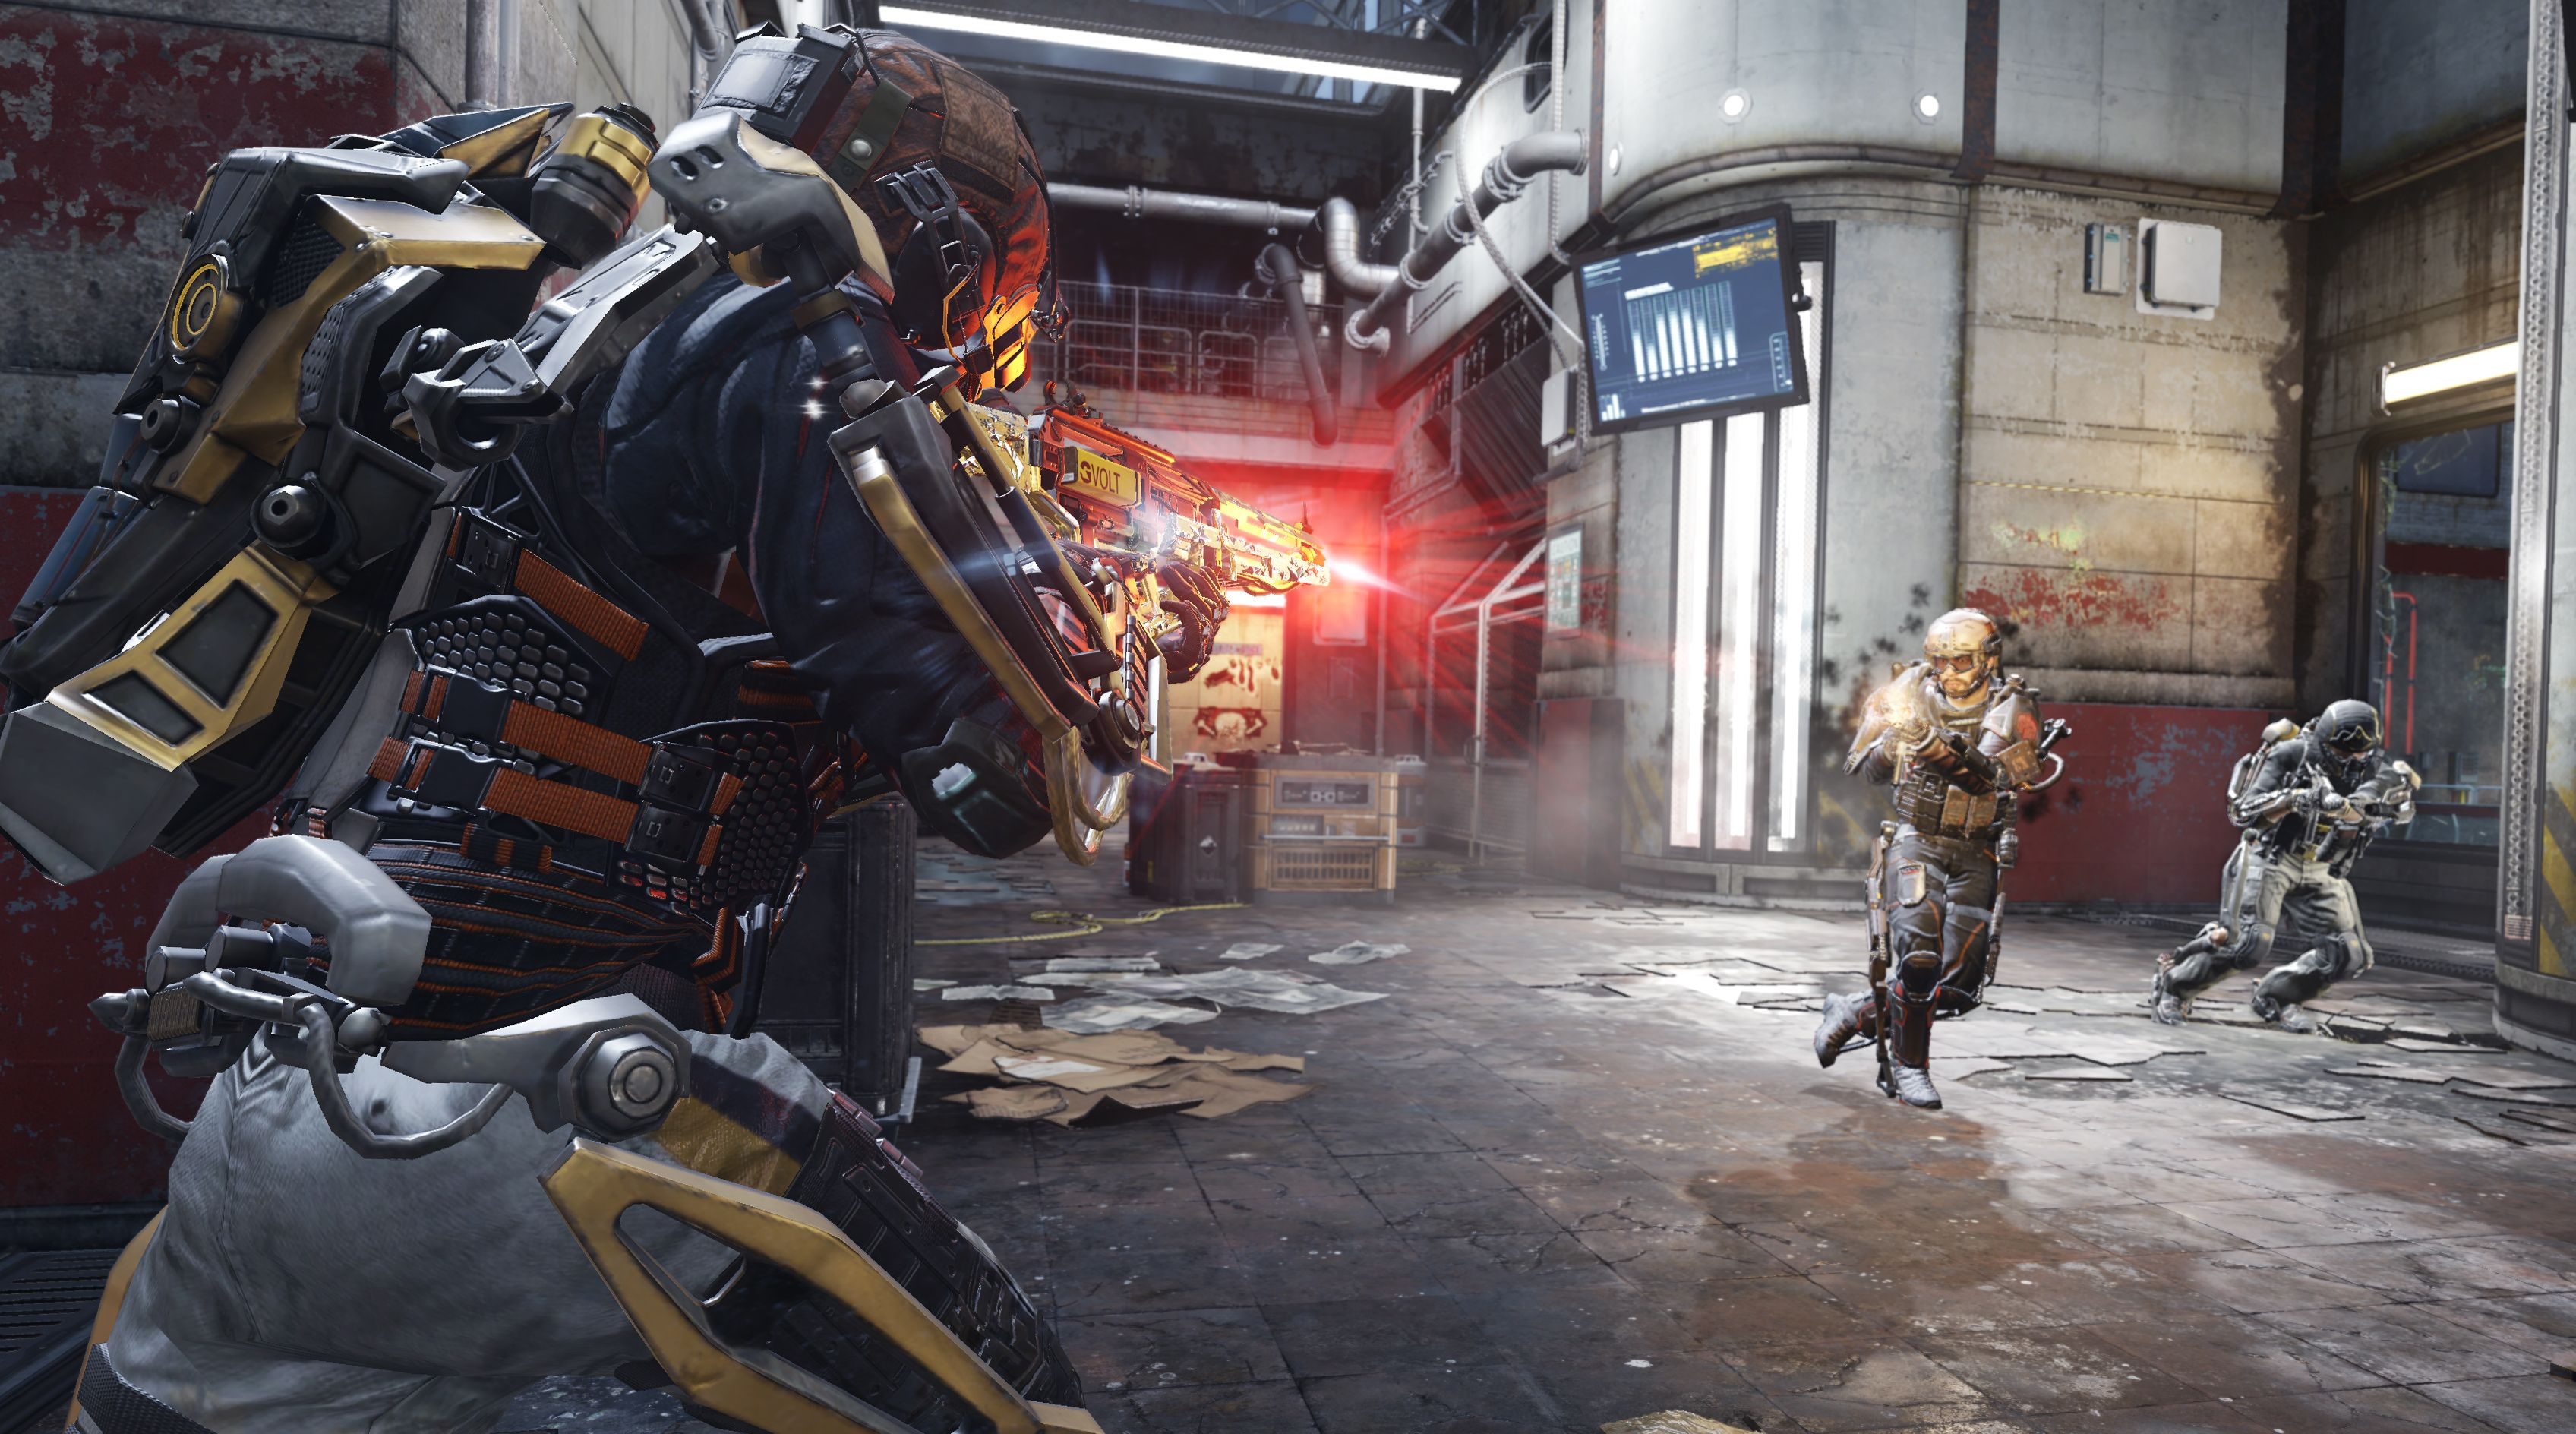 http://onlinetoughguys.com/advanced-warfare-ascendance-dlc-coming-to-playstation-consoles-and-pc-this-month/